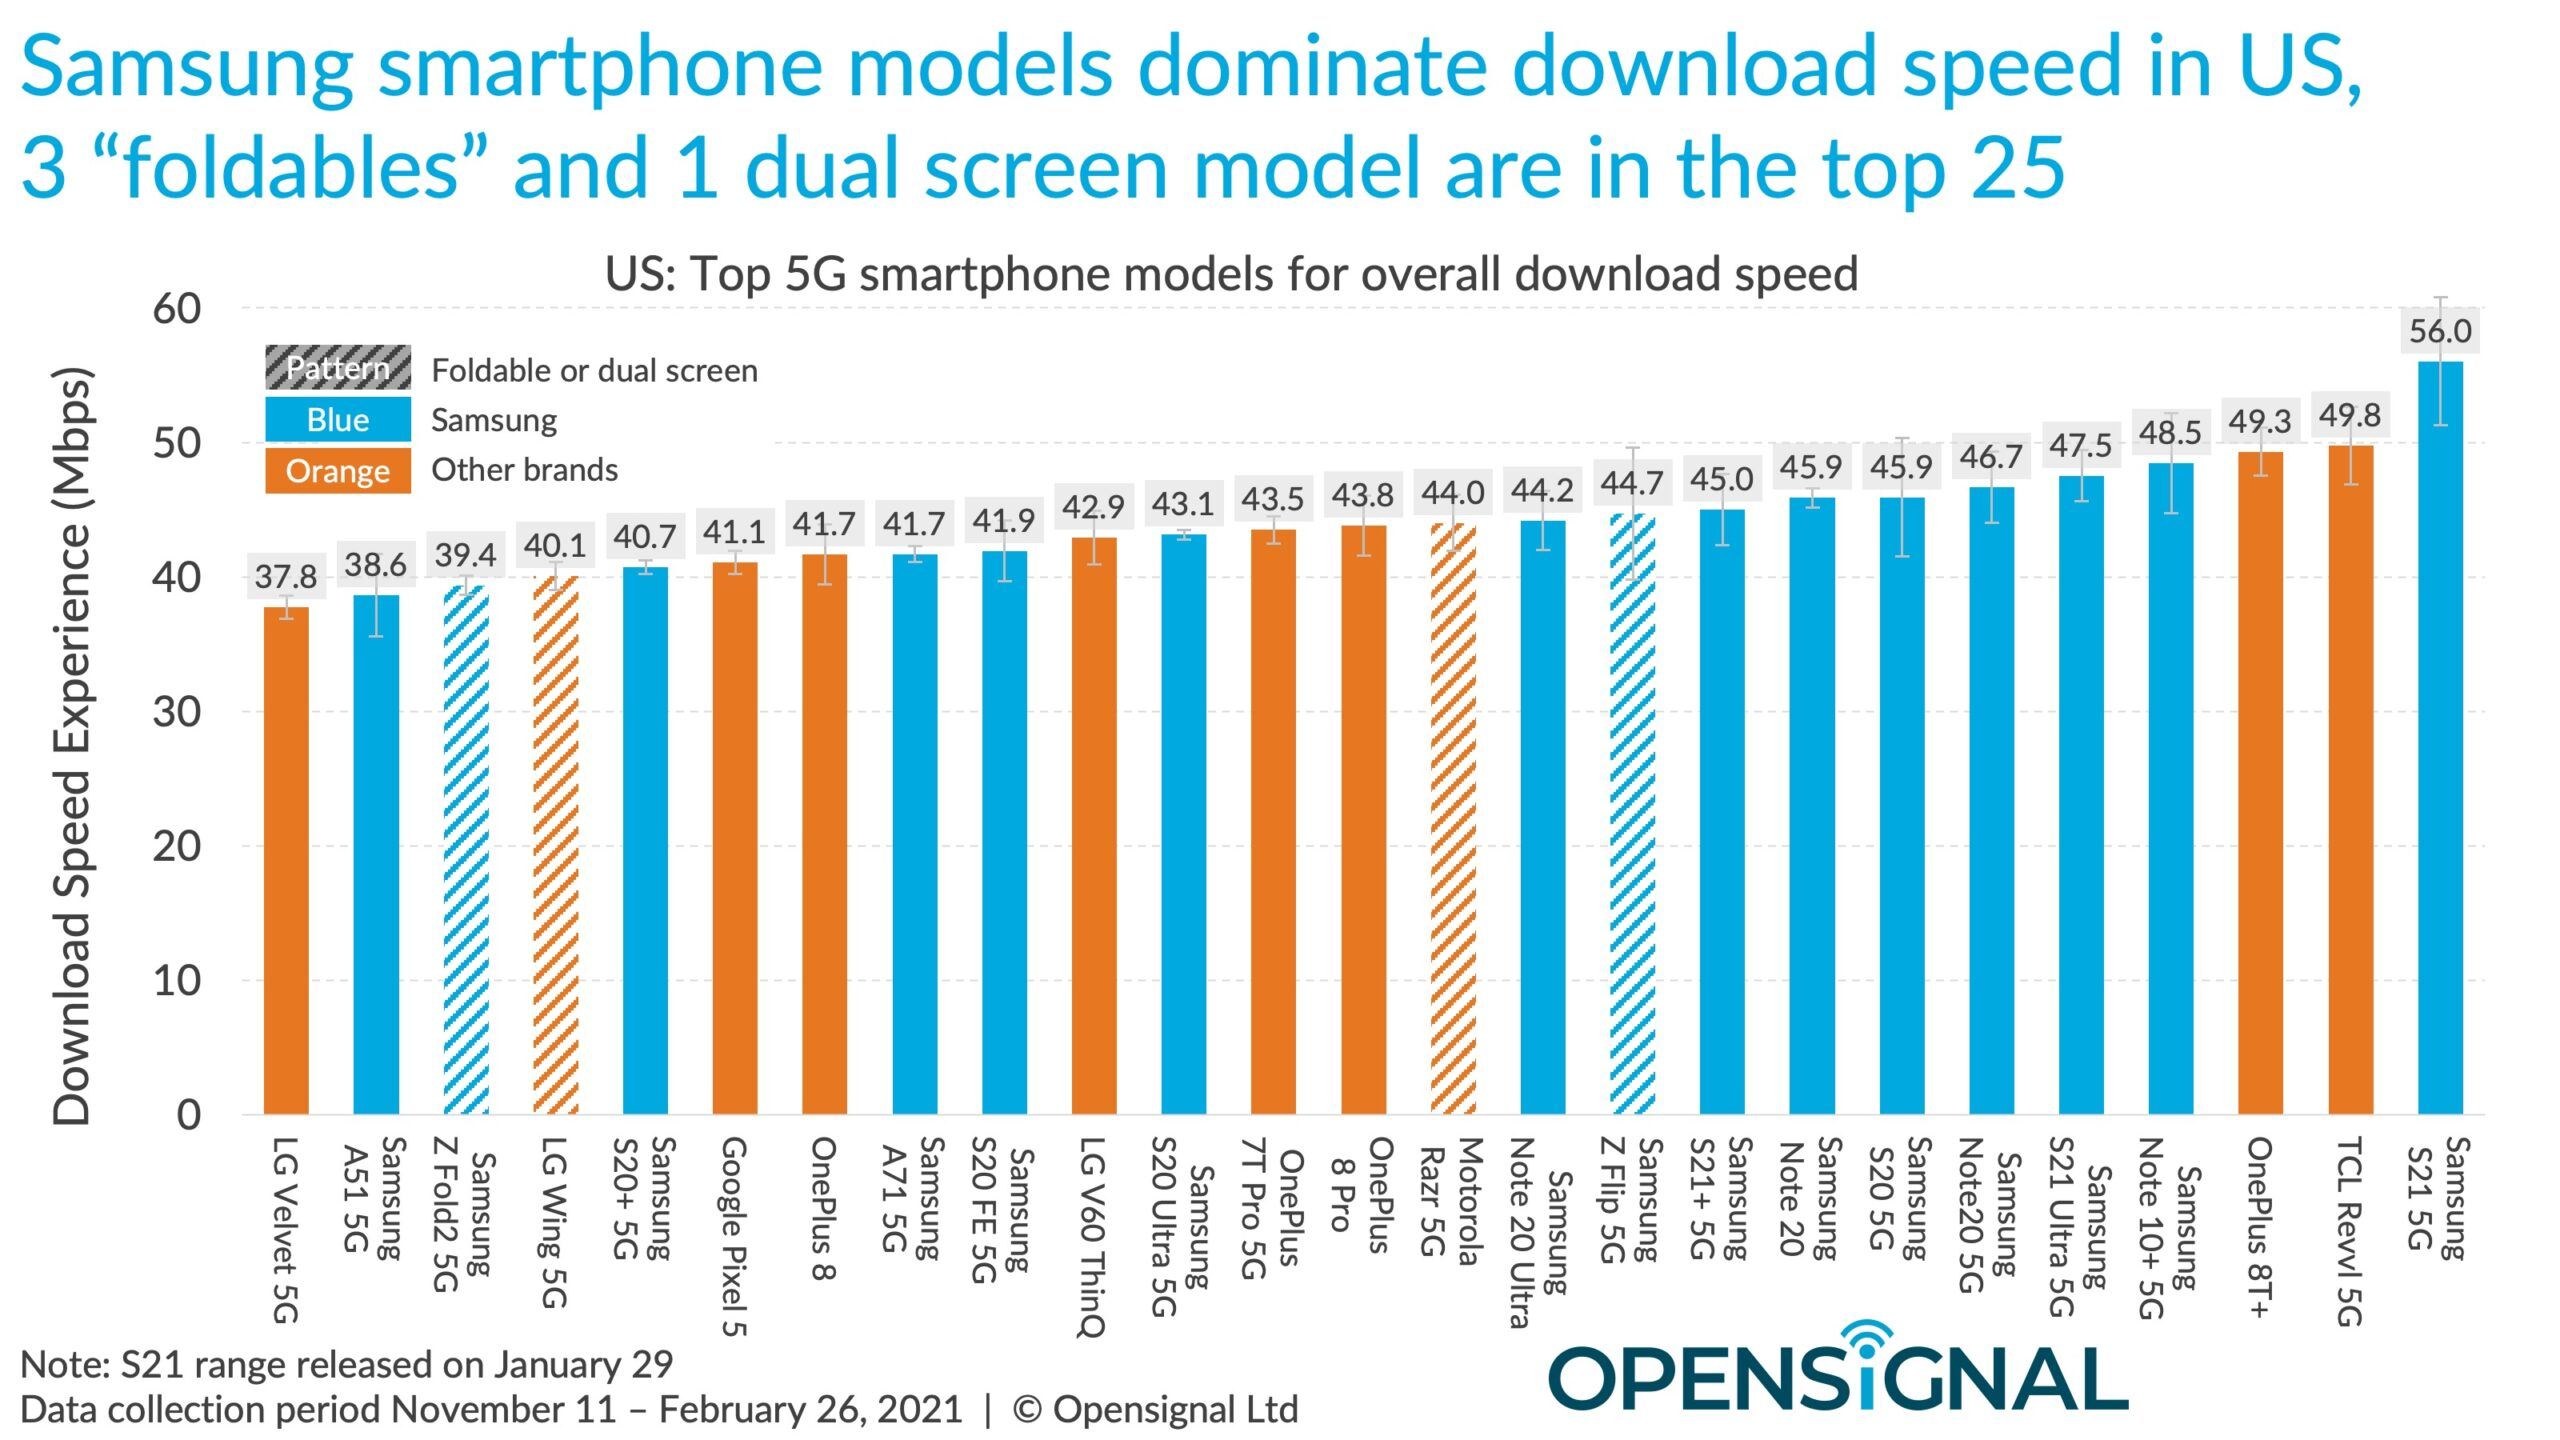 open signal scaled - IPhone owners benefit from poorer 5G than Android